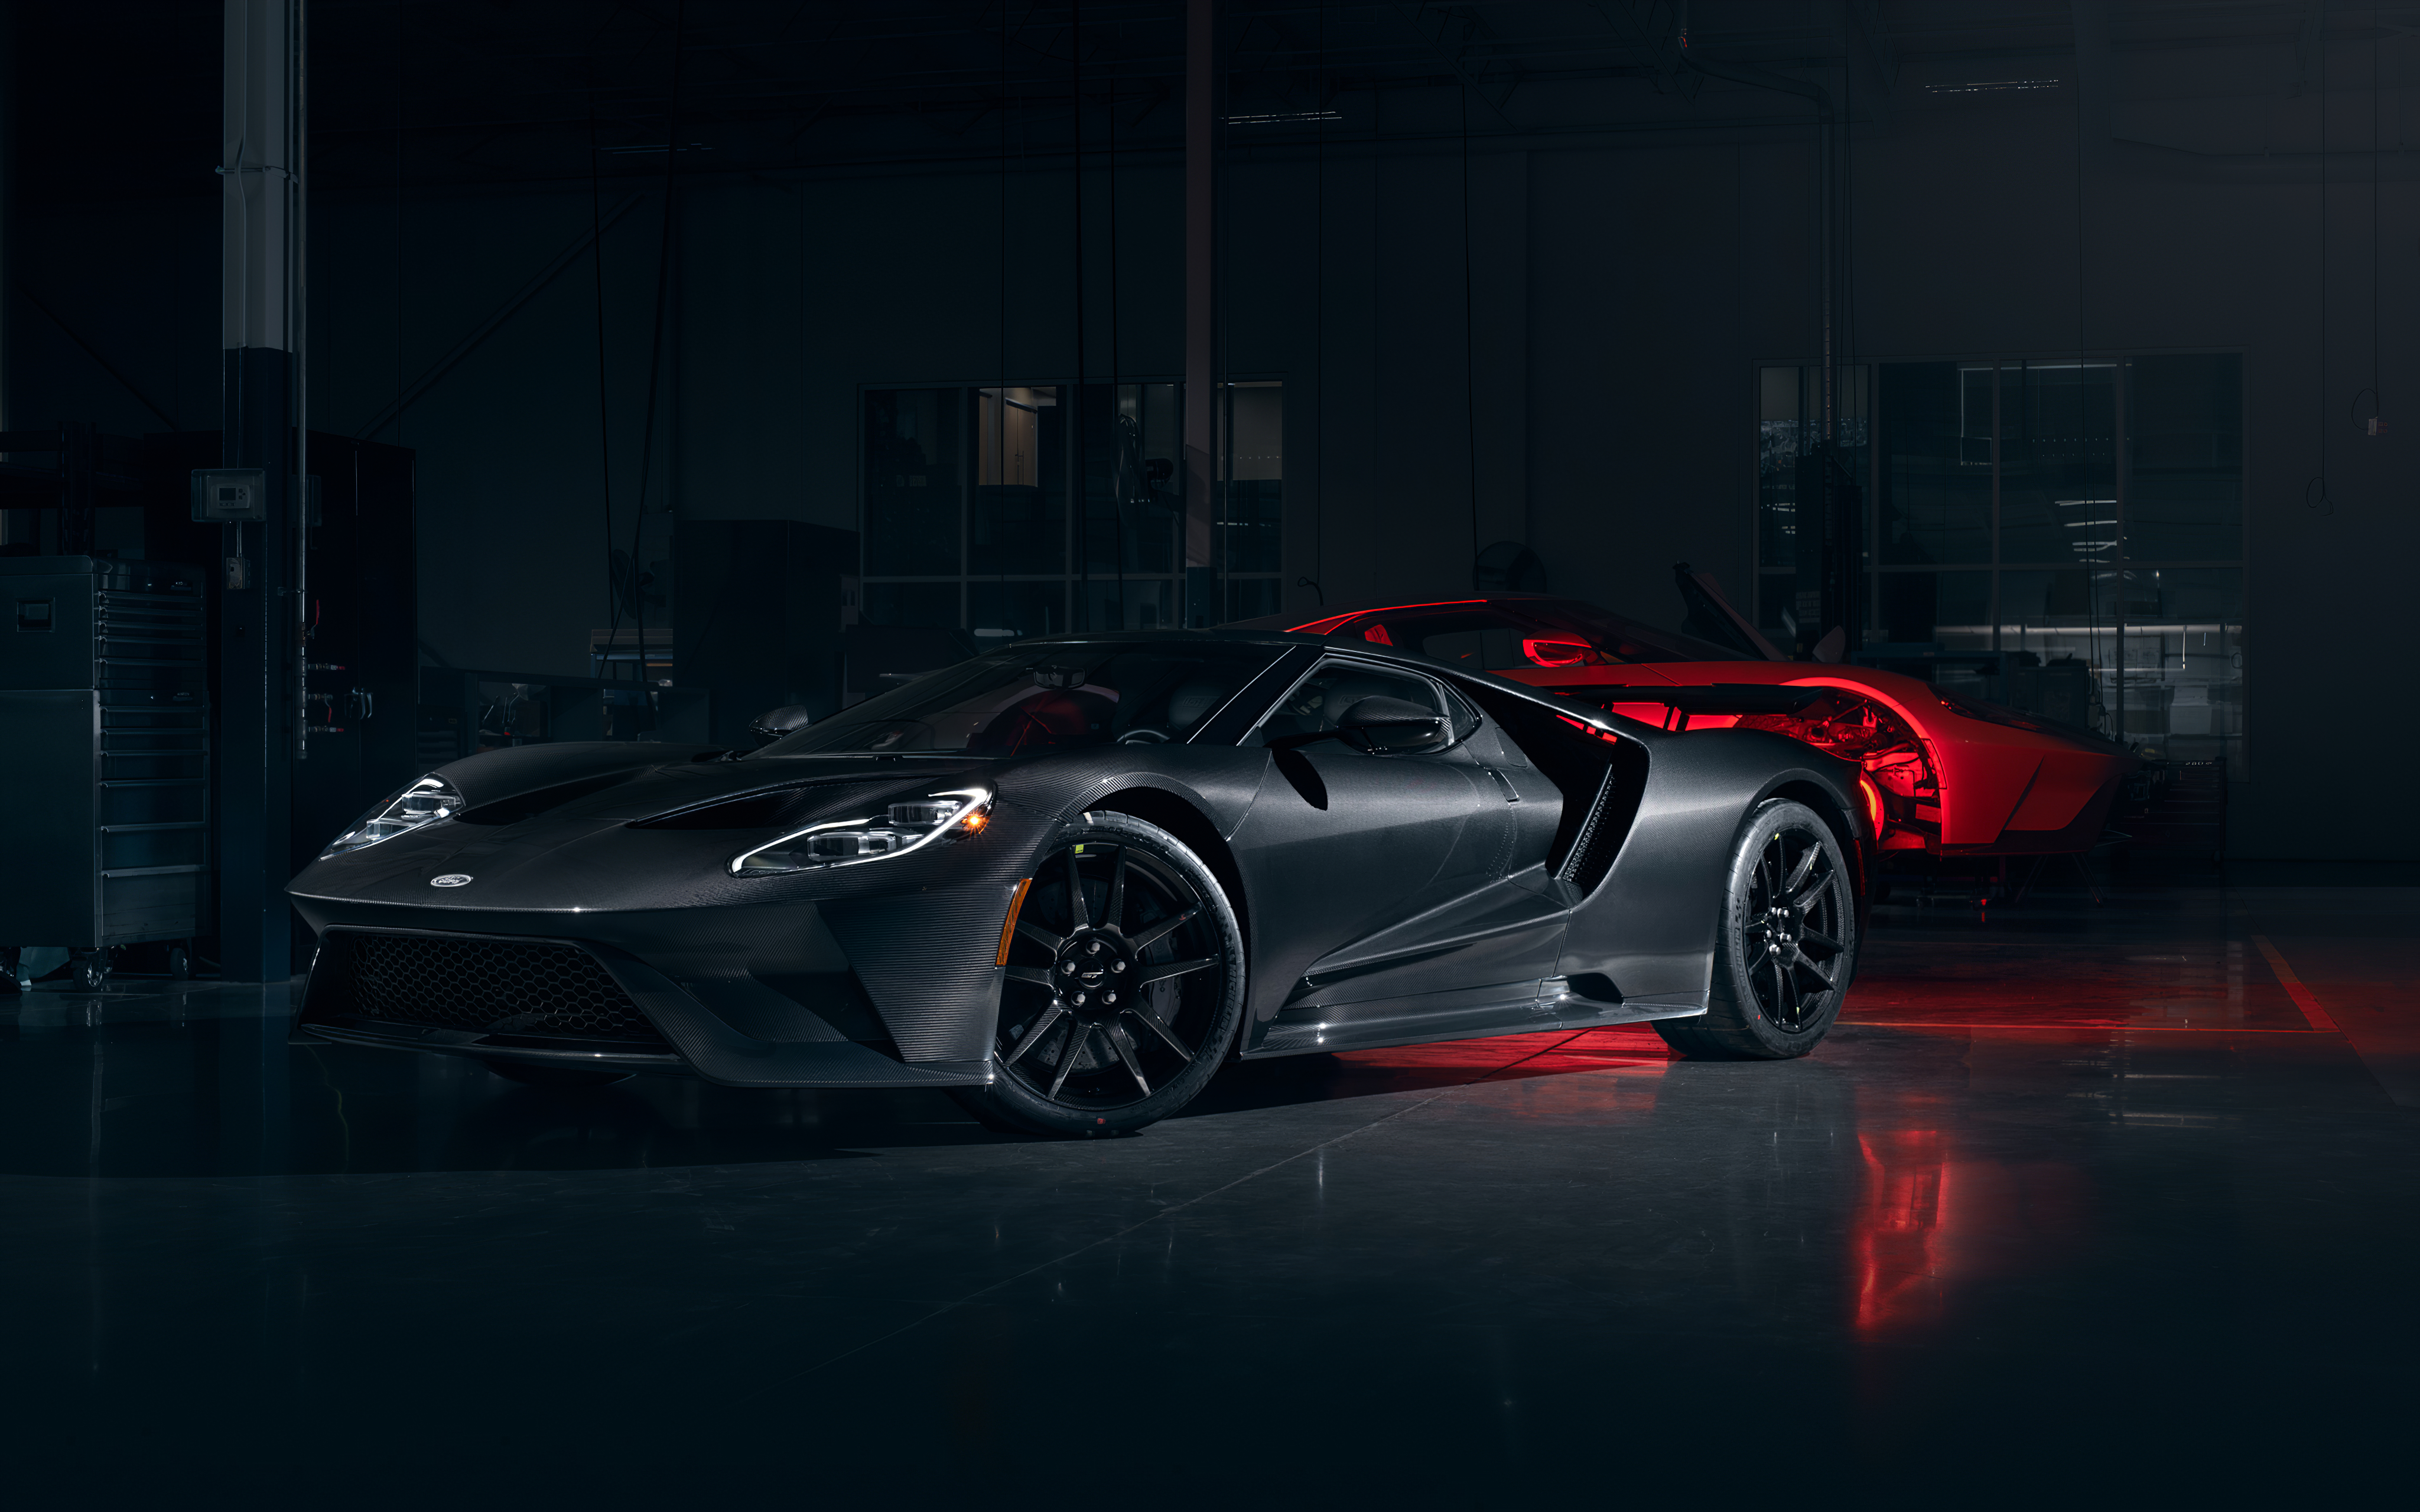 2560x1440 Ford Gt 2020 1440p Resolution Hd 4k Wallpapers Images Backgrounds Photos And Pictures